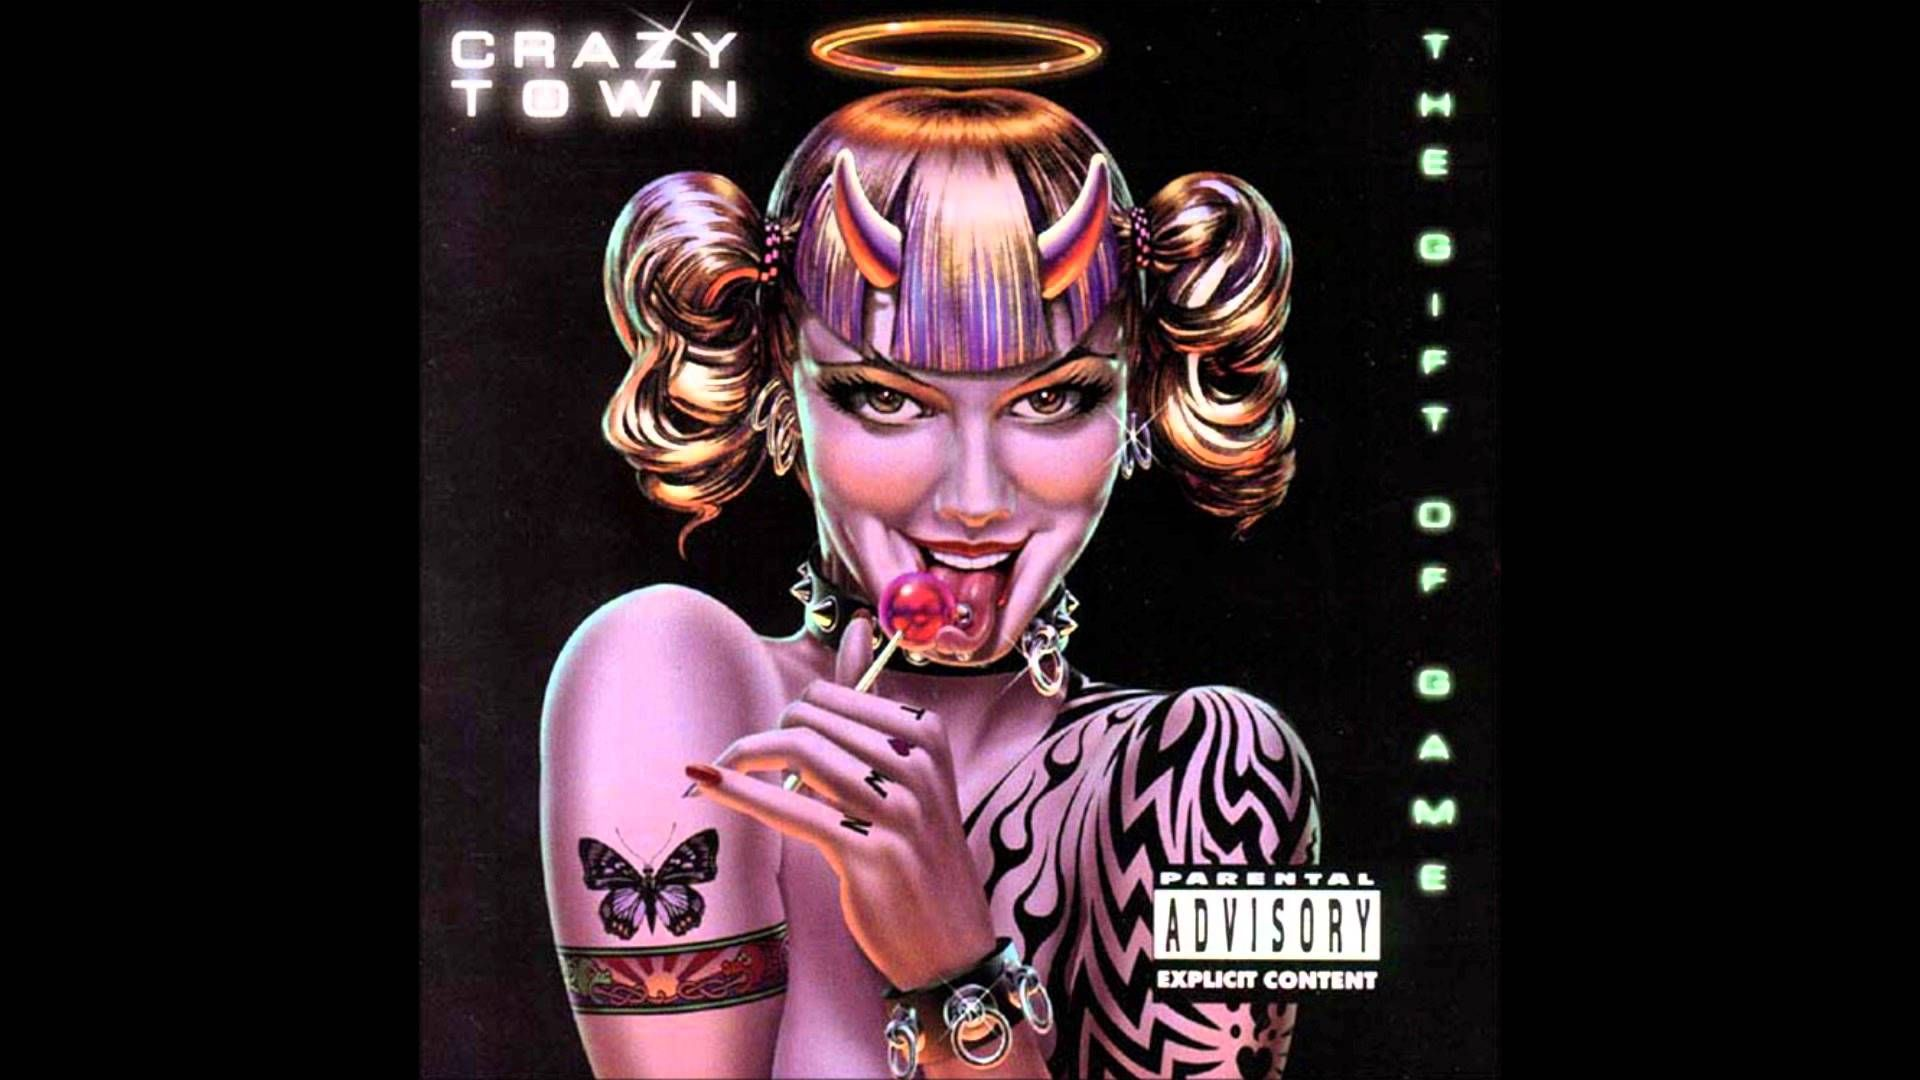 Crazy Town Butterfly Butterfly, Cover art, Angel